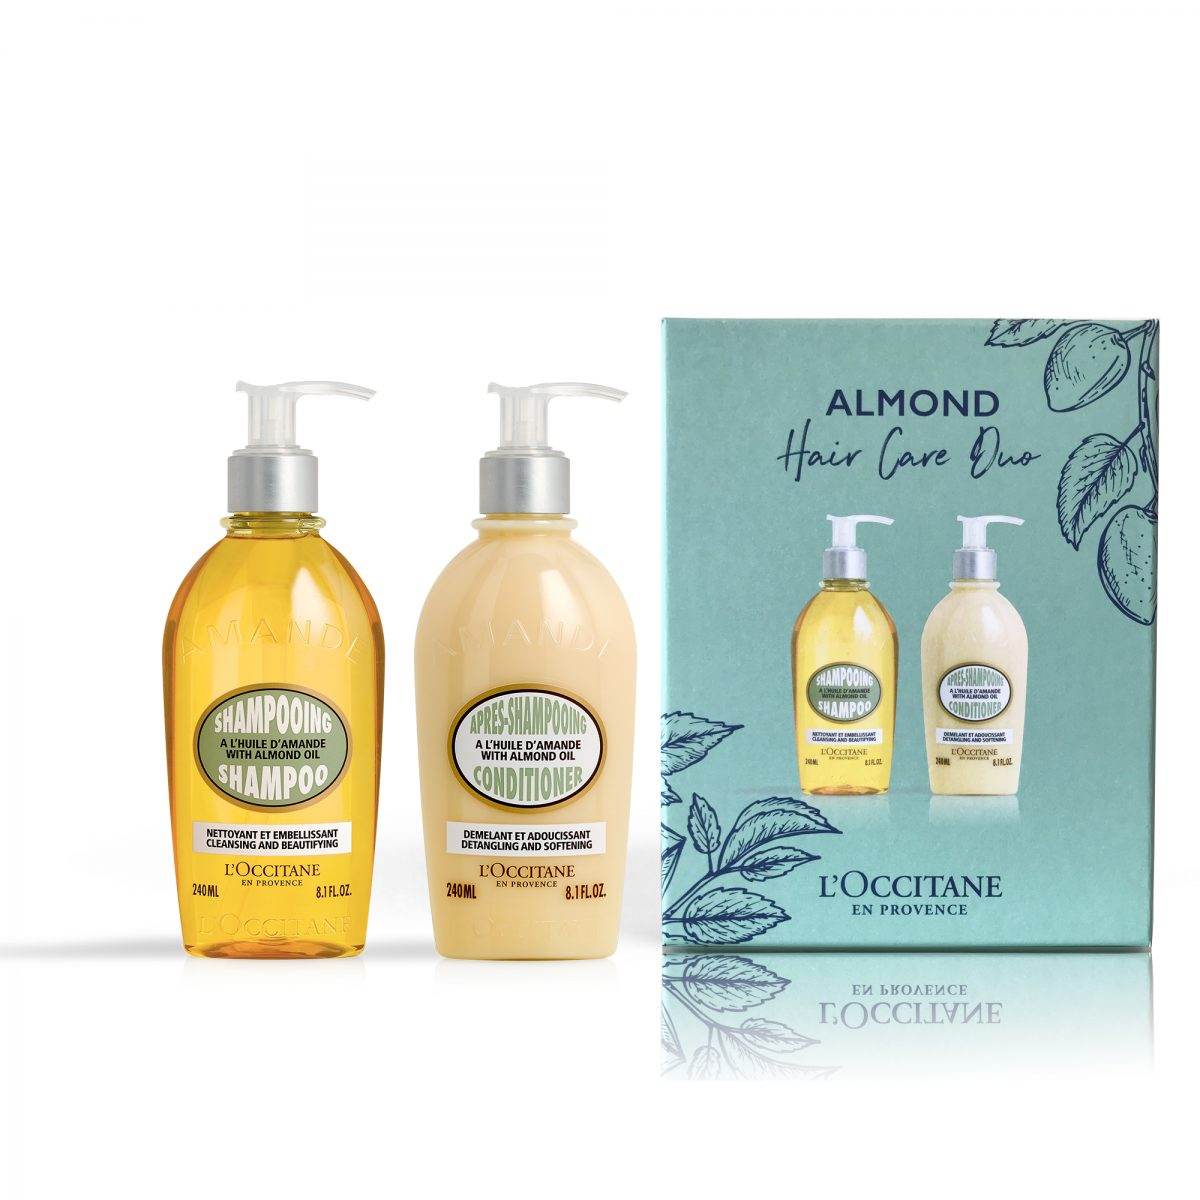 L'Occitane Almond shampoo and conditioner duo set